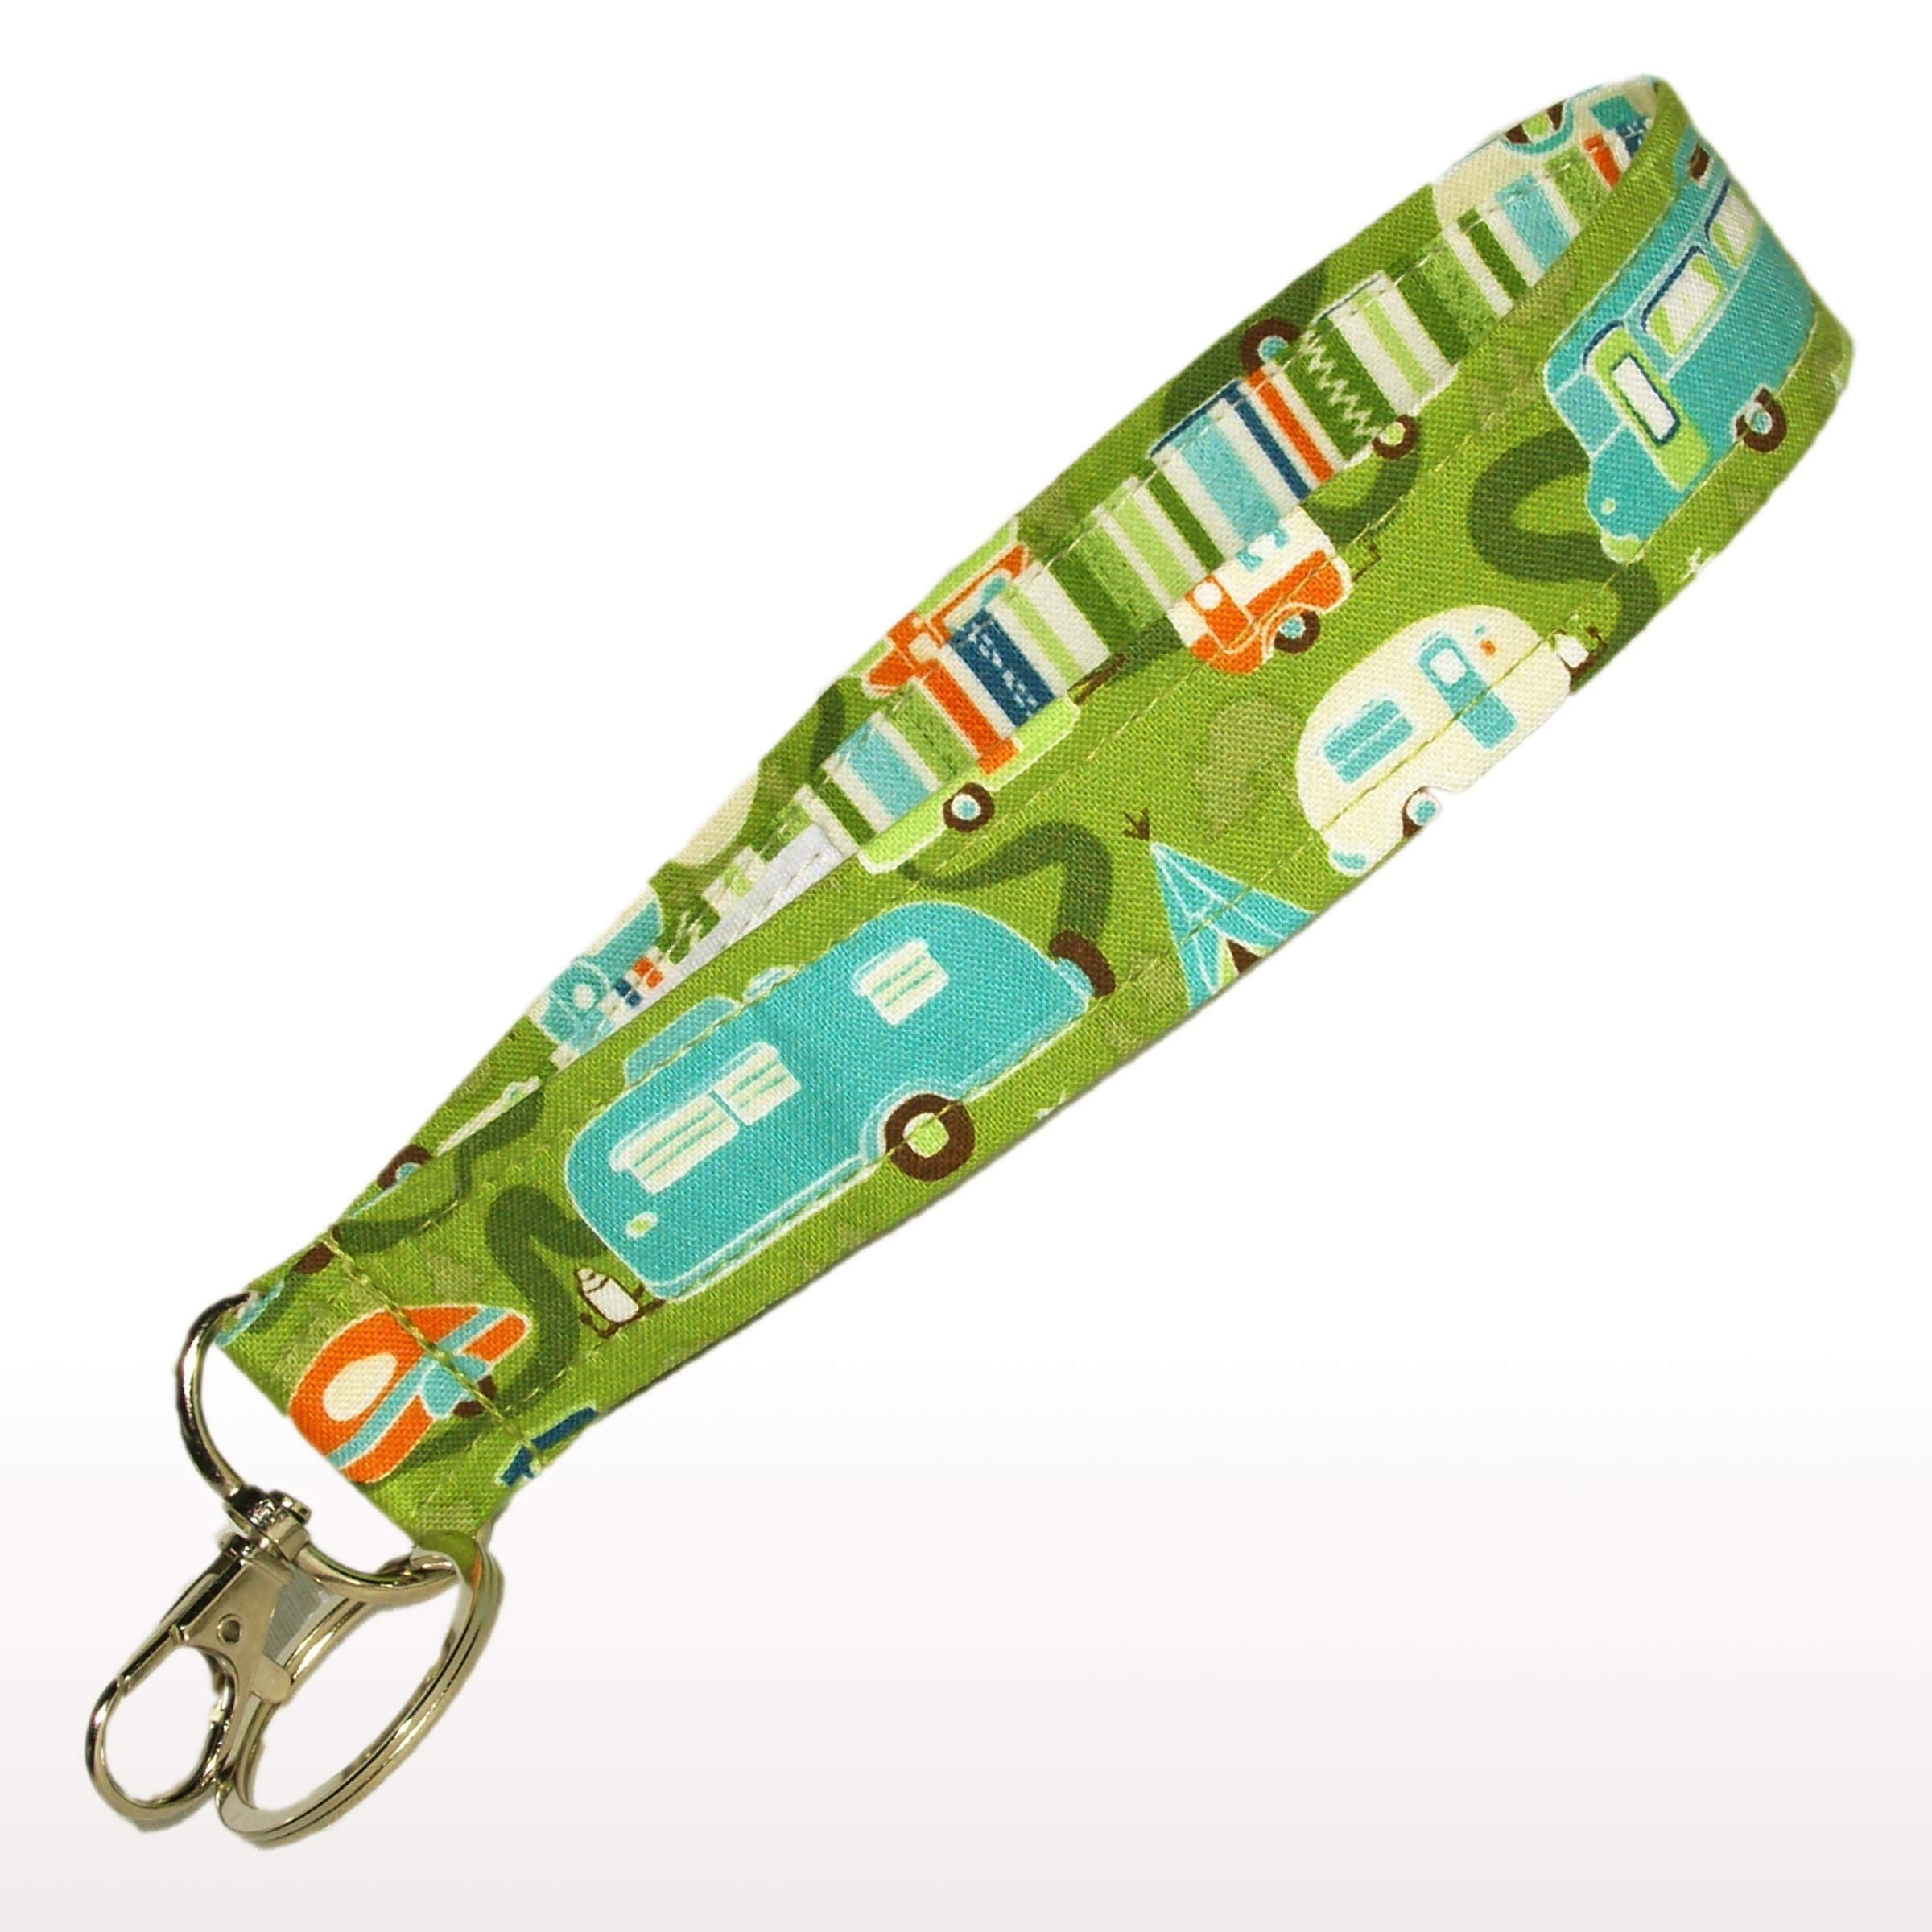 6'' Camper Keychain - Green With Retro Campers - Camping Key Fob Strap - RV Accessories - Purse Strap